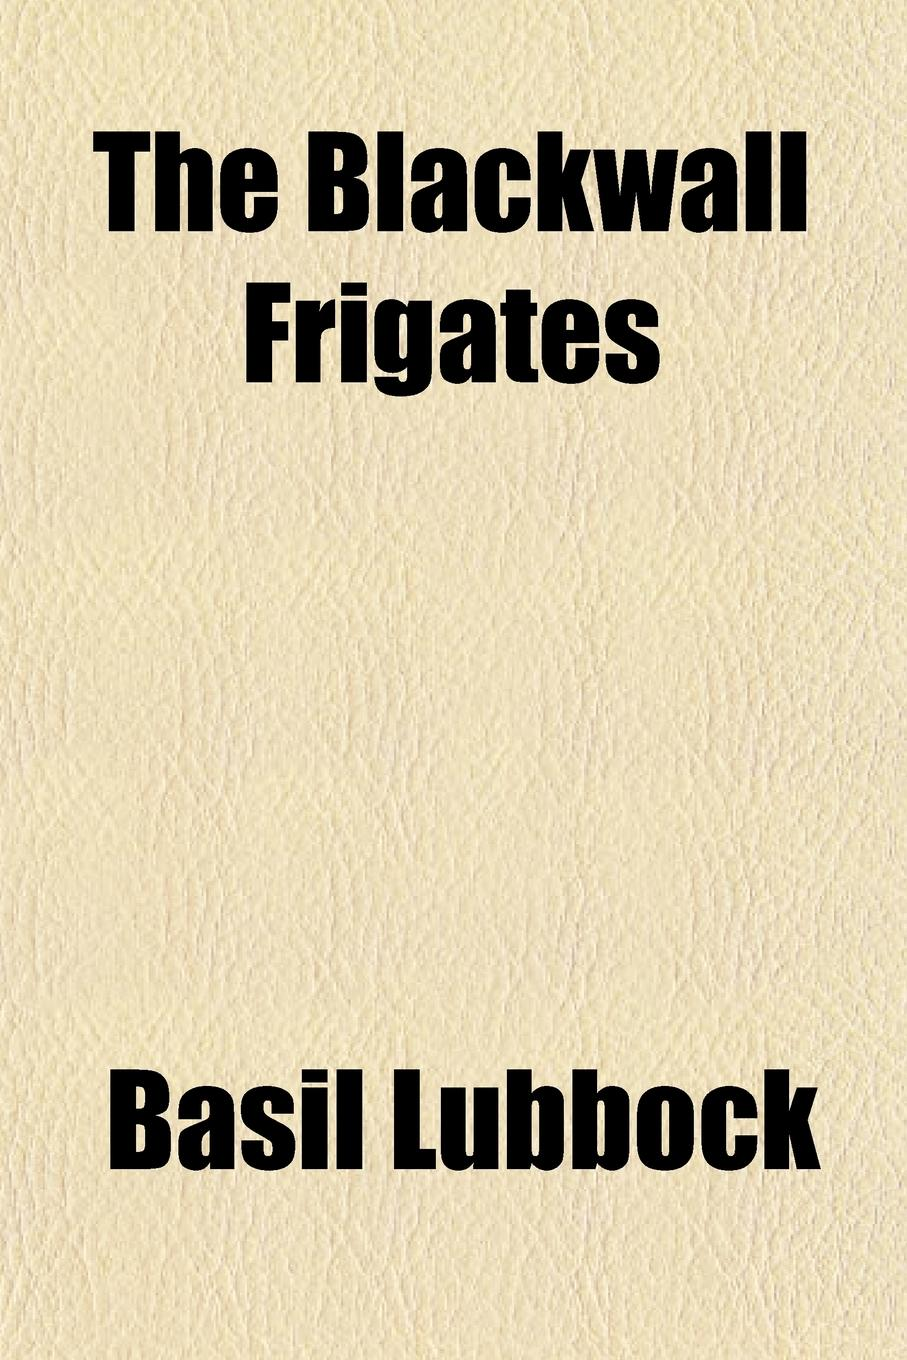 Basil Lubbock The Blackwall Frigates